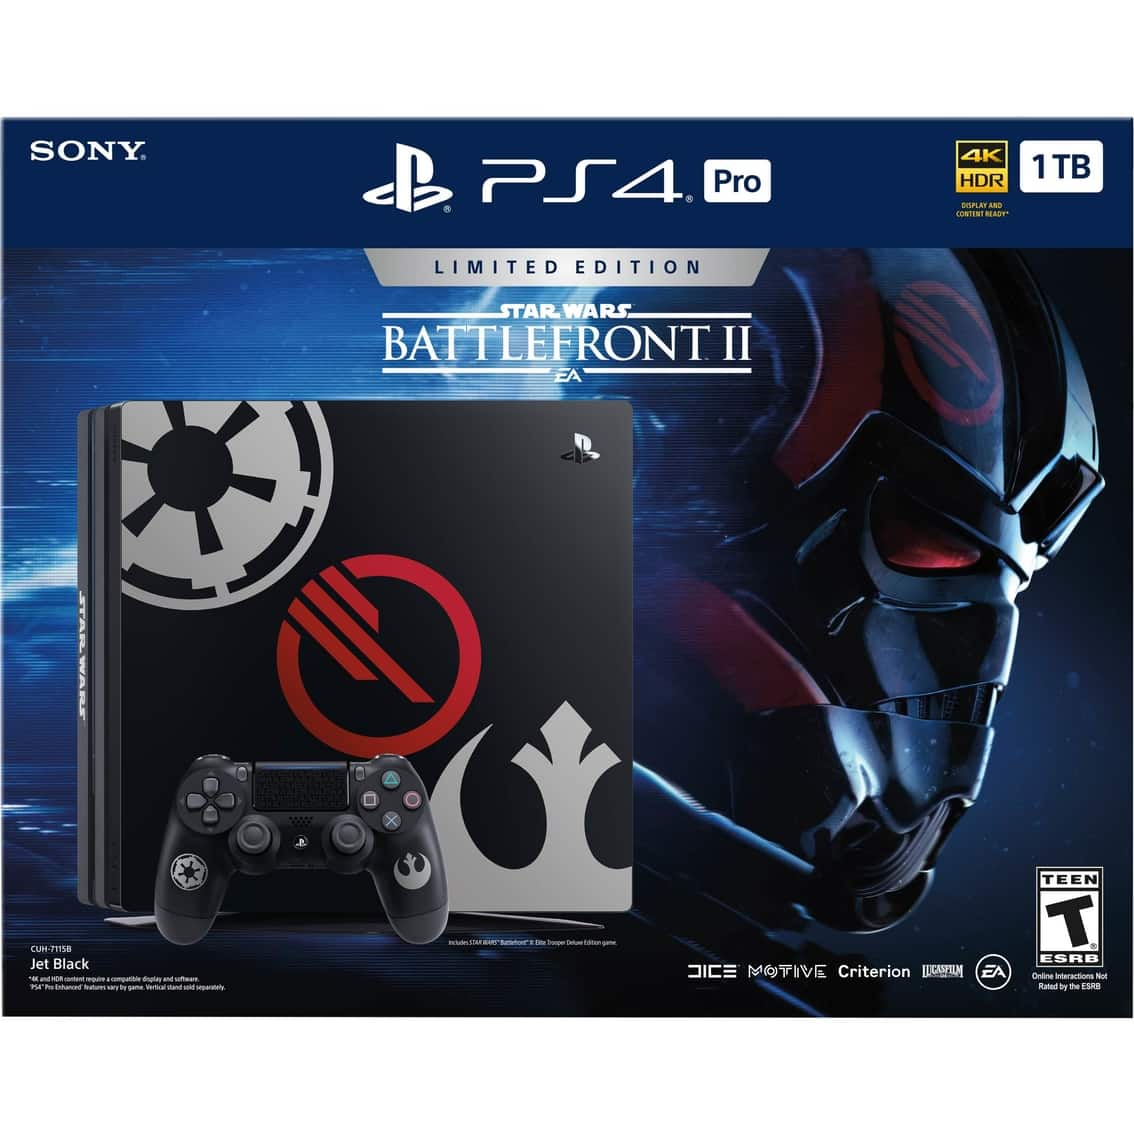 Sony PlayStation 4 Pro 1TB Star Wars: Battlefront 2 LE $379